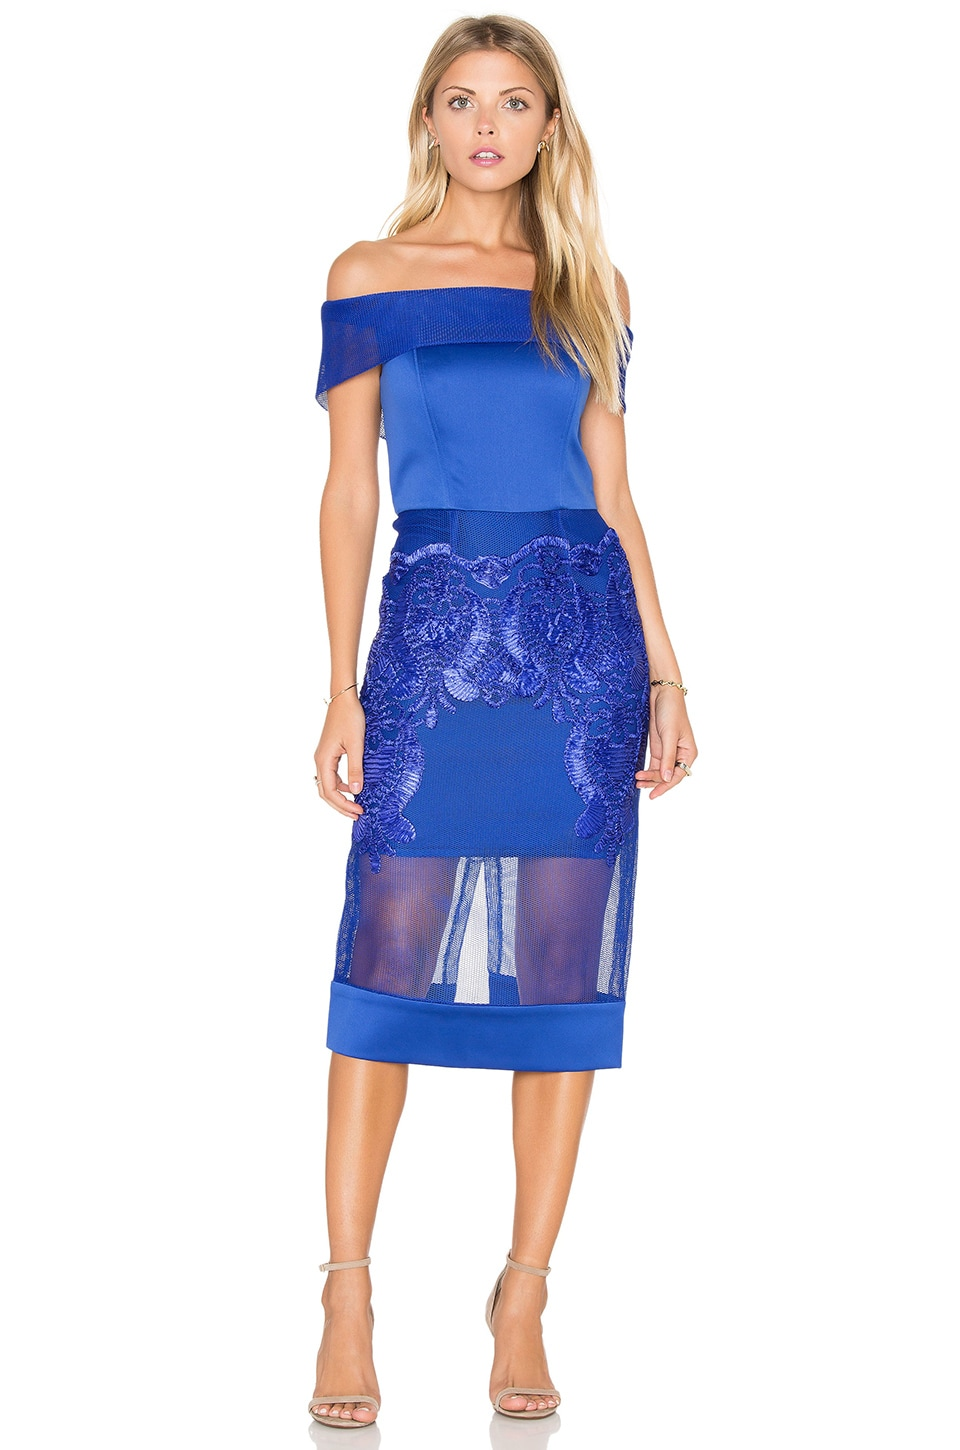 Piada Cobalt Dress by Bronx and Banco